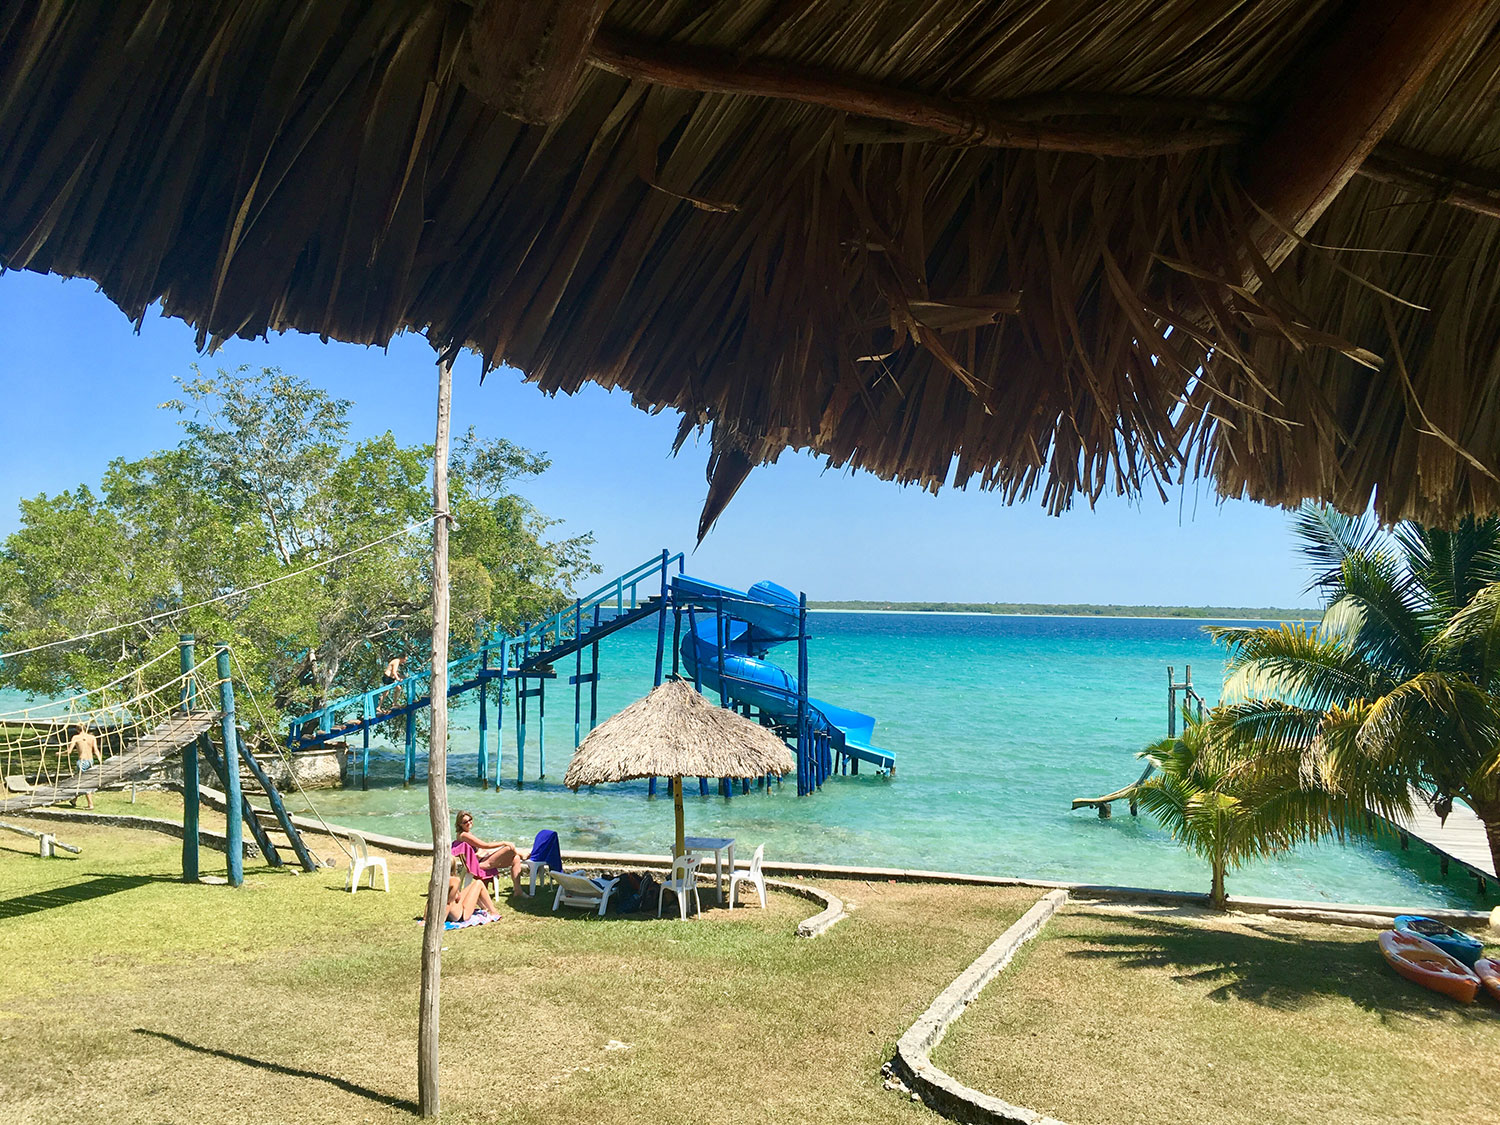 Hammocks_and_Ruins_What_to_Do_Yucatan_Mexico__village_lakes_Maya_3.jpg